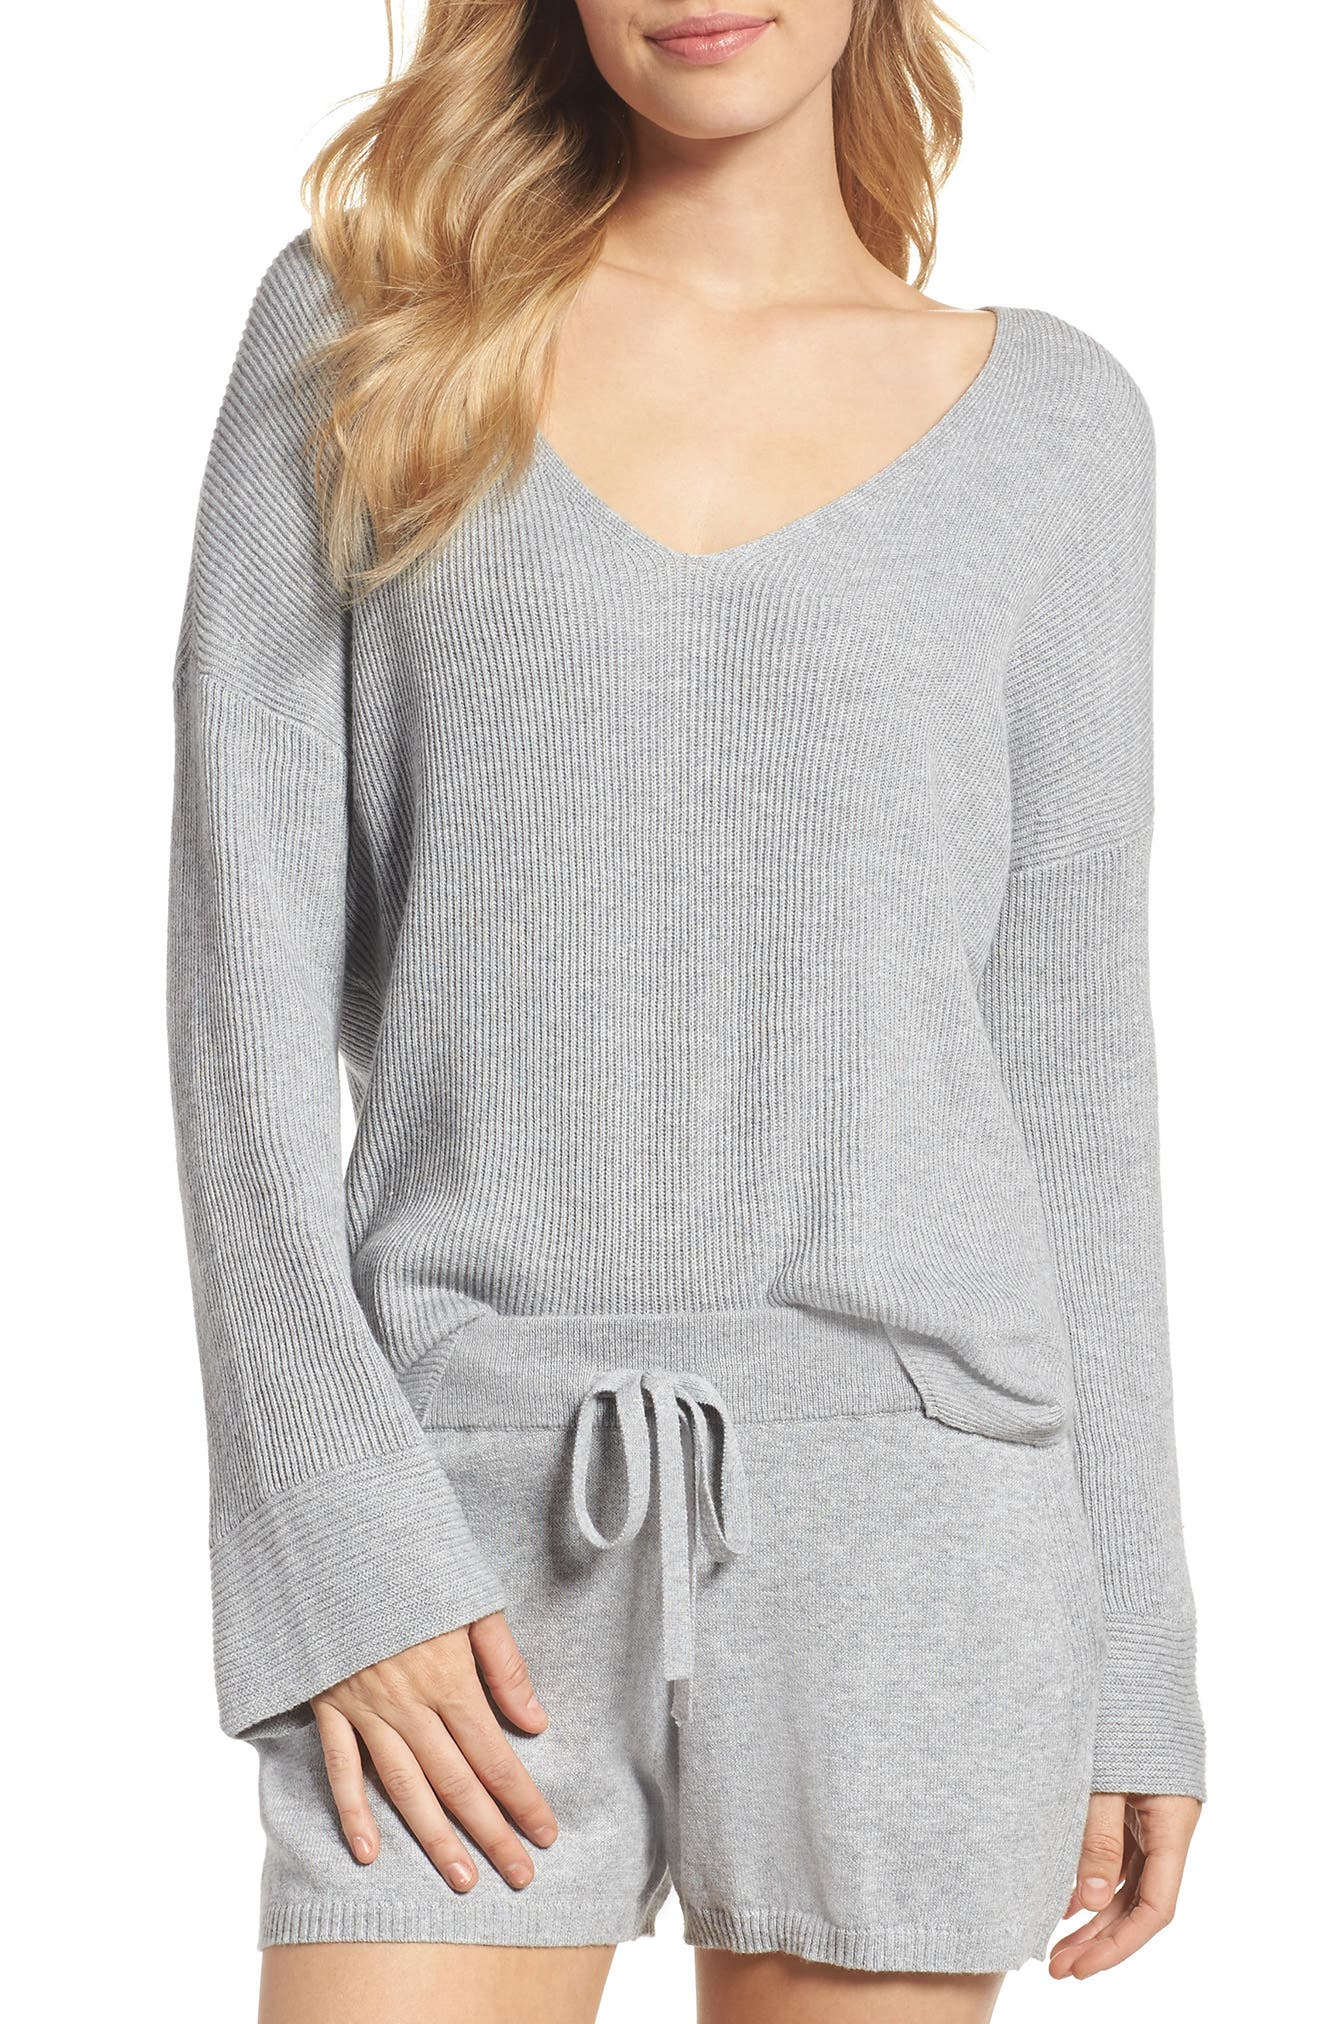 Veronica Lounge Pullover,                         Main,                         color,